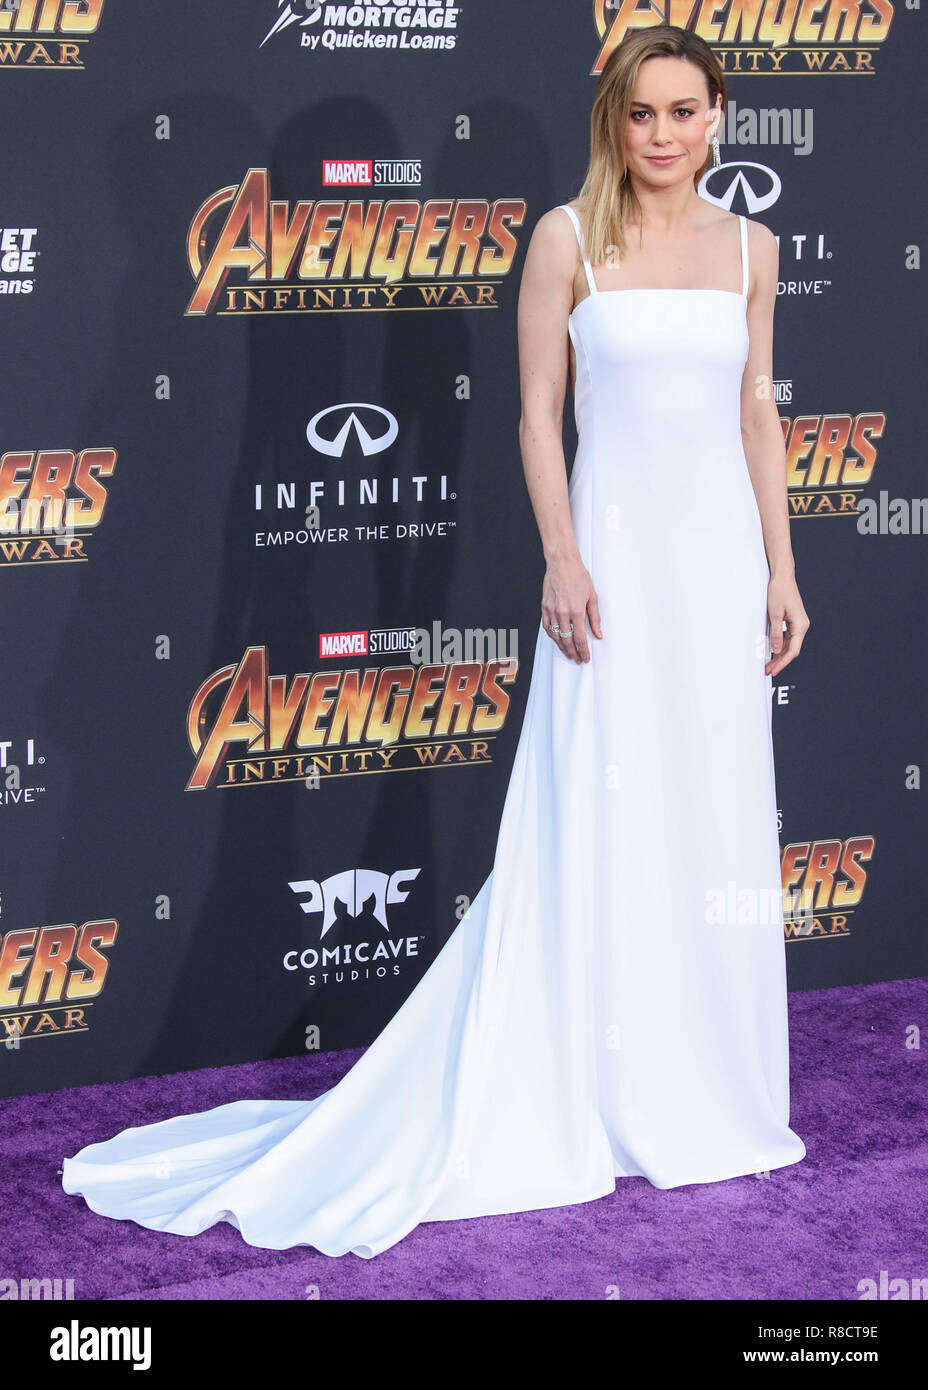 HOLLYWOOD, LOS ANGELES, CA, USA - APRIL 23: Brie Larson at the World Premiere Of Disney And Marvel's 'Avengers: Infinity War' held at the El Capitan Theatre, Dolby Theatre and TCL Chinese Theatre IMAX on April 23, 2018 in Hollywood, Los Angeles, California, United States. (Photo by Xavier Collin/Image Press Agency) Stock Photo